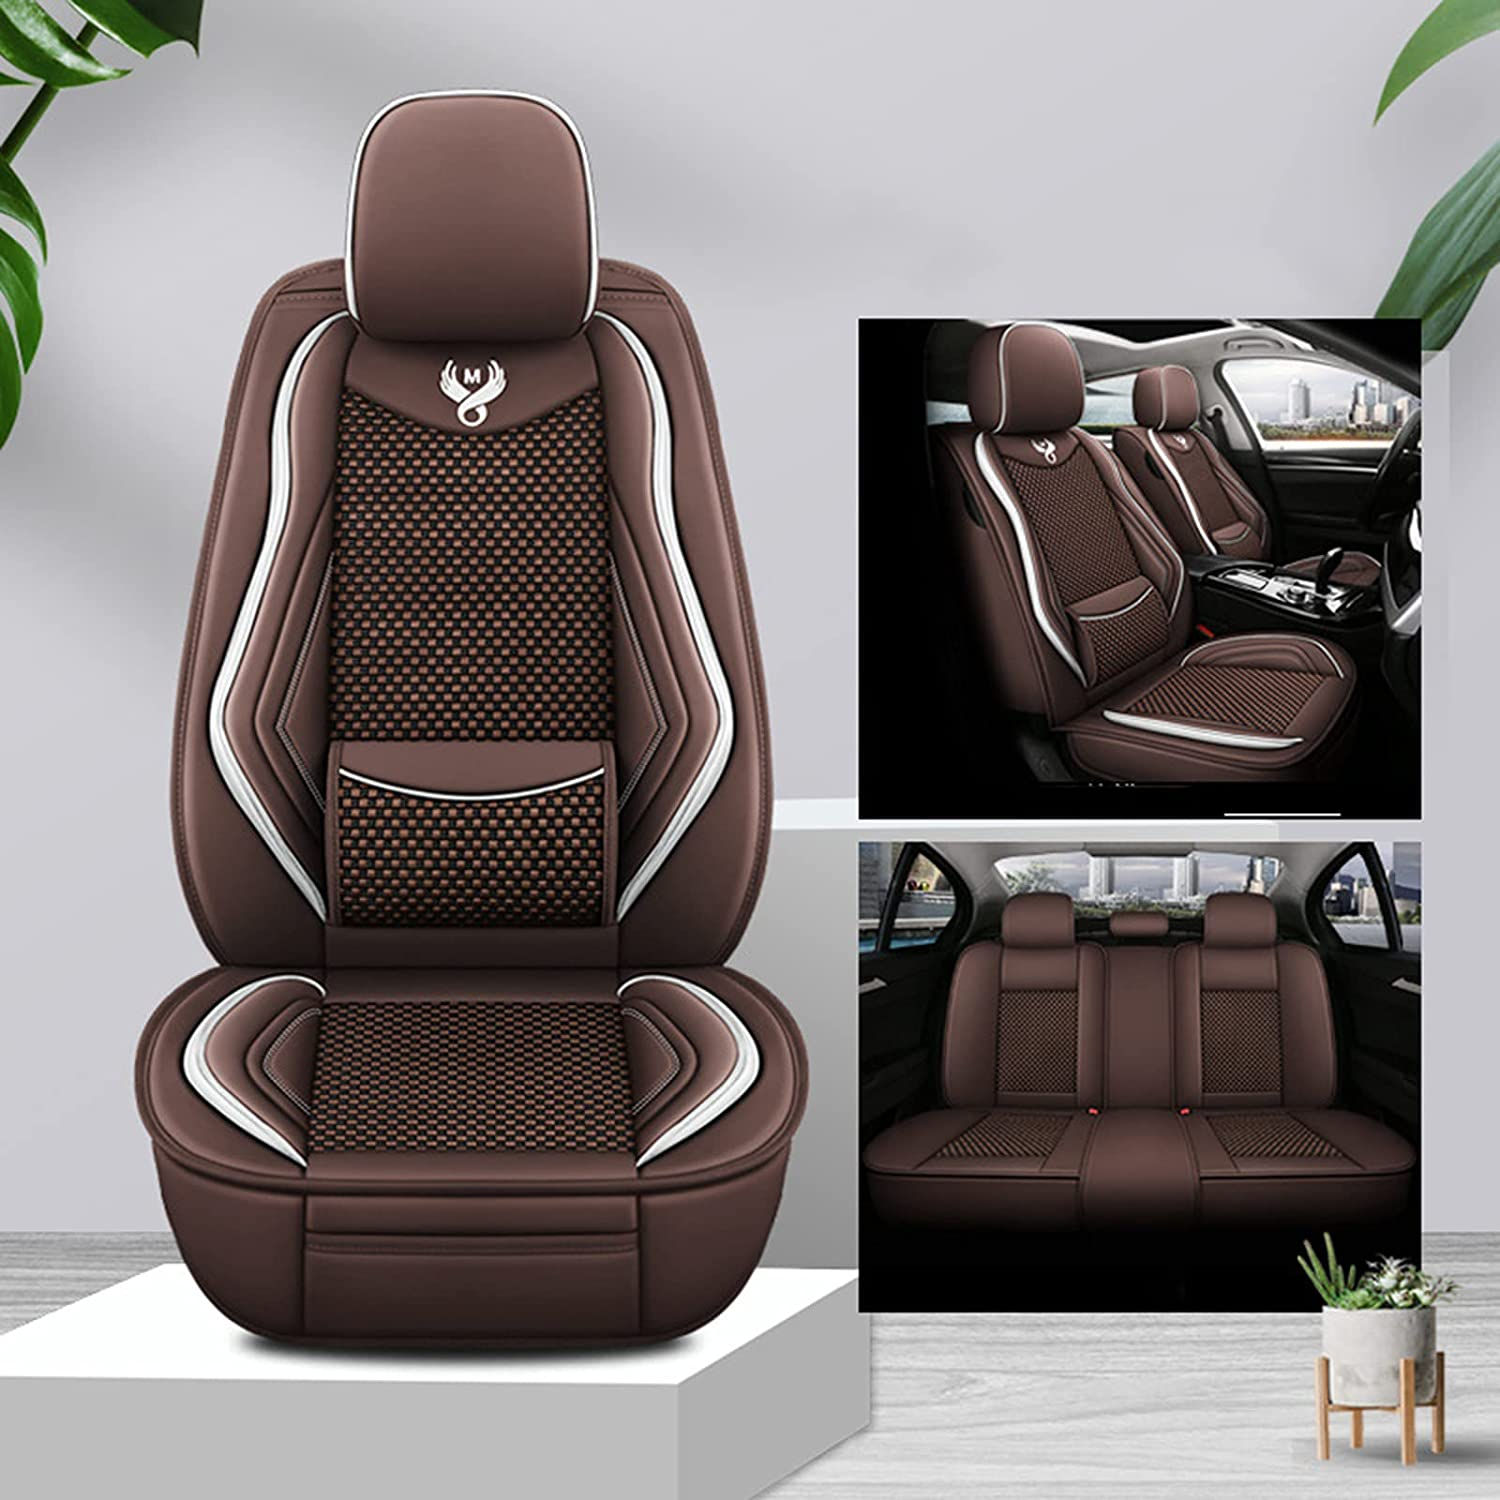 Fly YUTING Car Seat Don't miss mart the campaign Protect Waterproof Cover Accessories